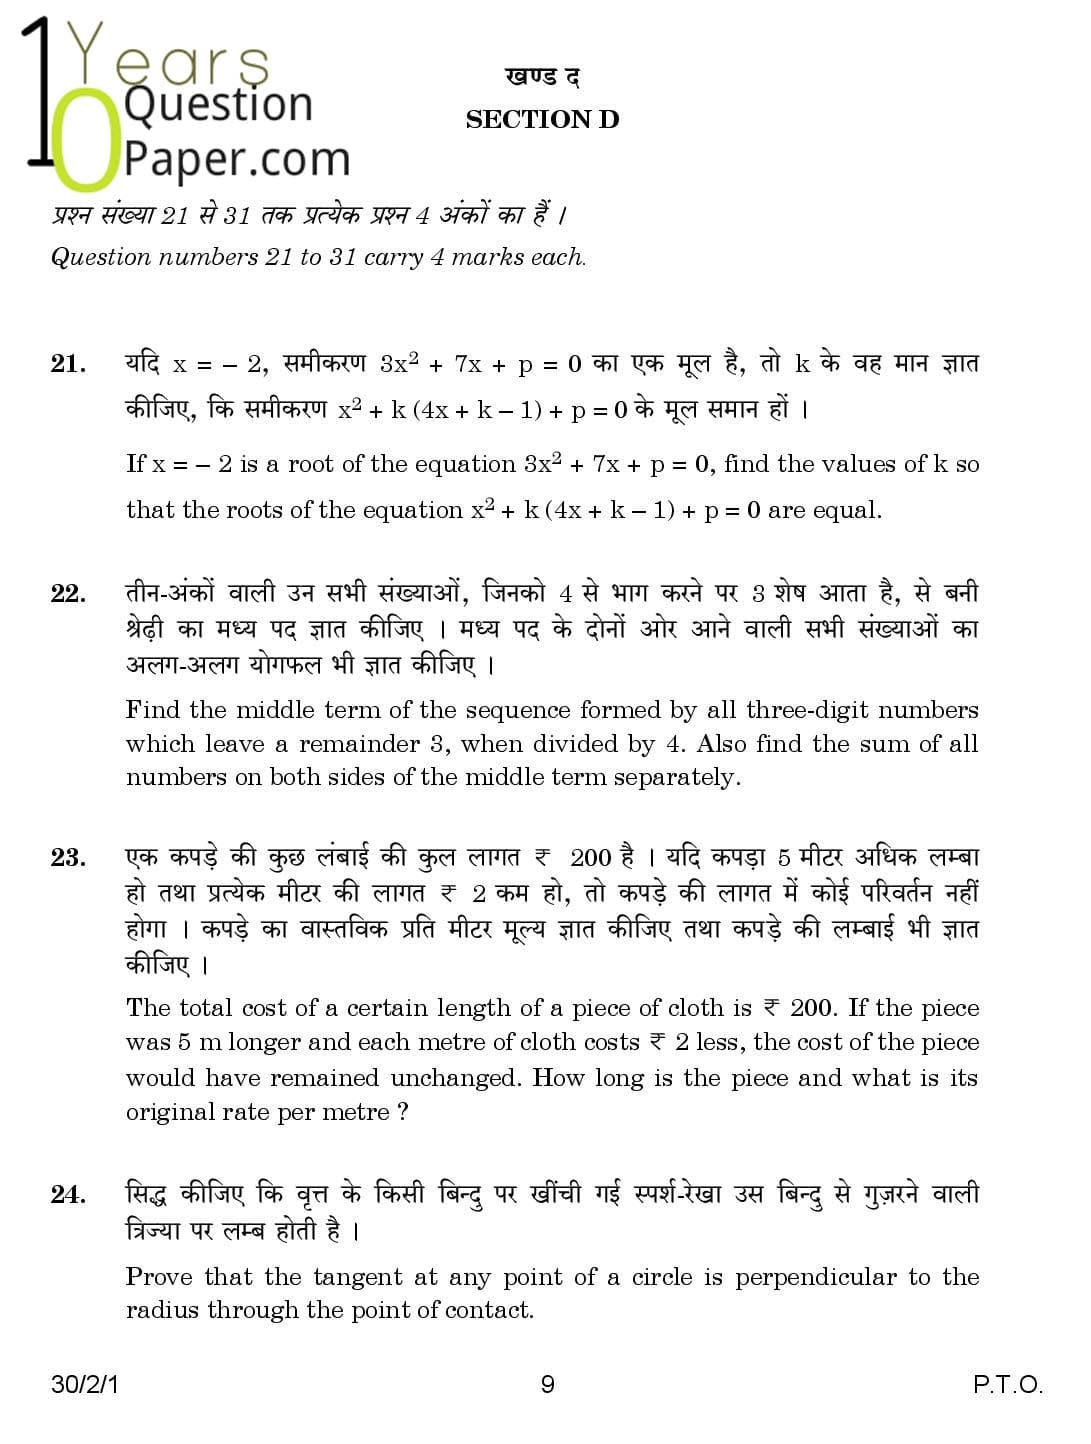 CBSE Class 10 Mathematics 2015 Question Paper